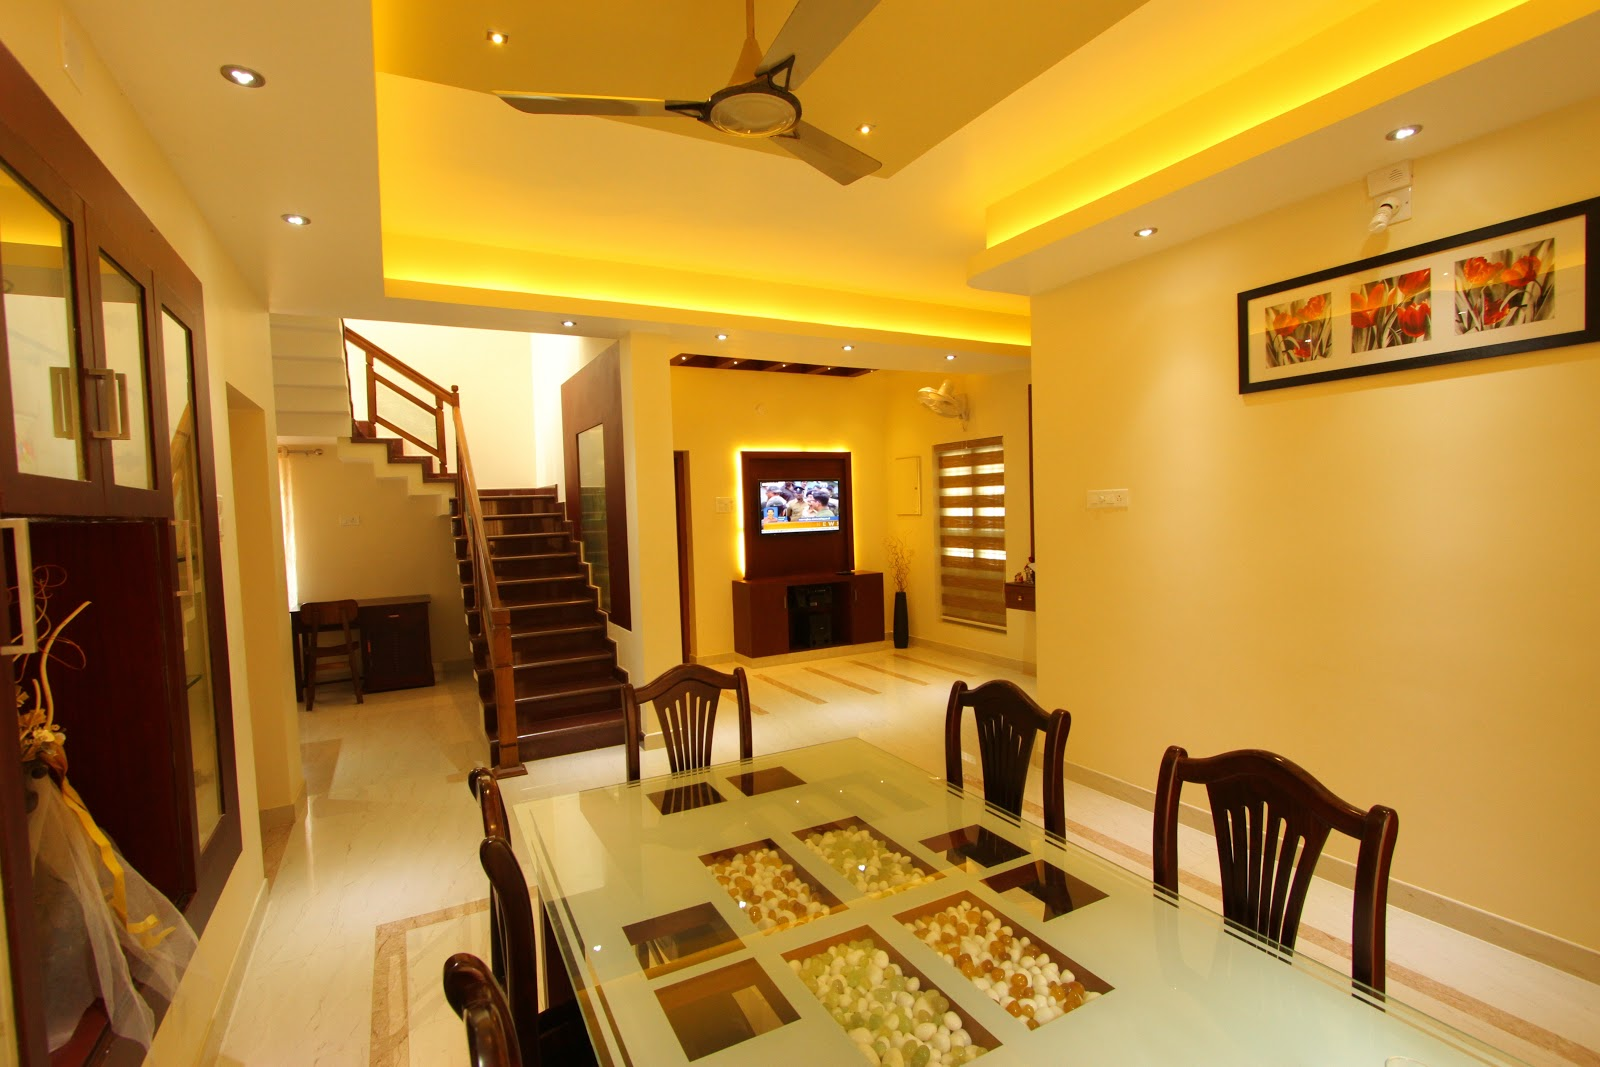 Shilpakala interiors award winning home interior design for Interior designs home